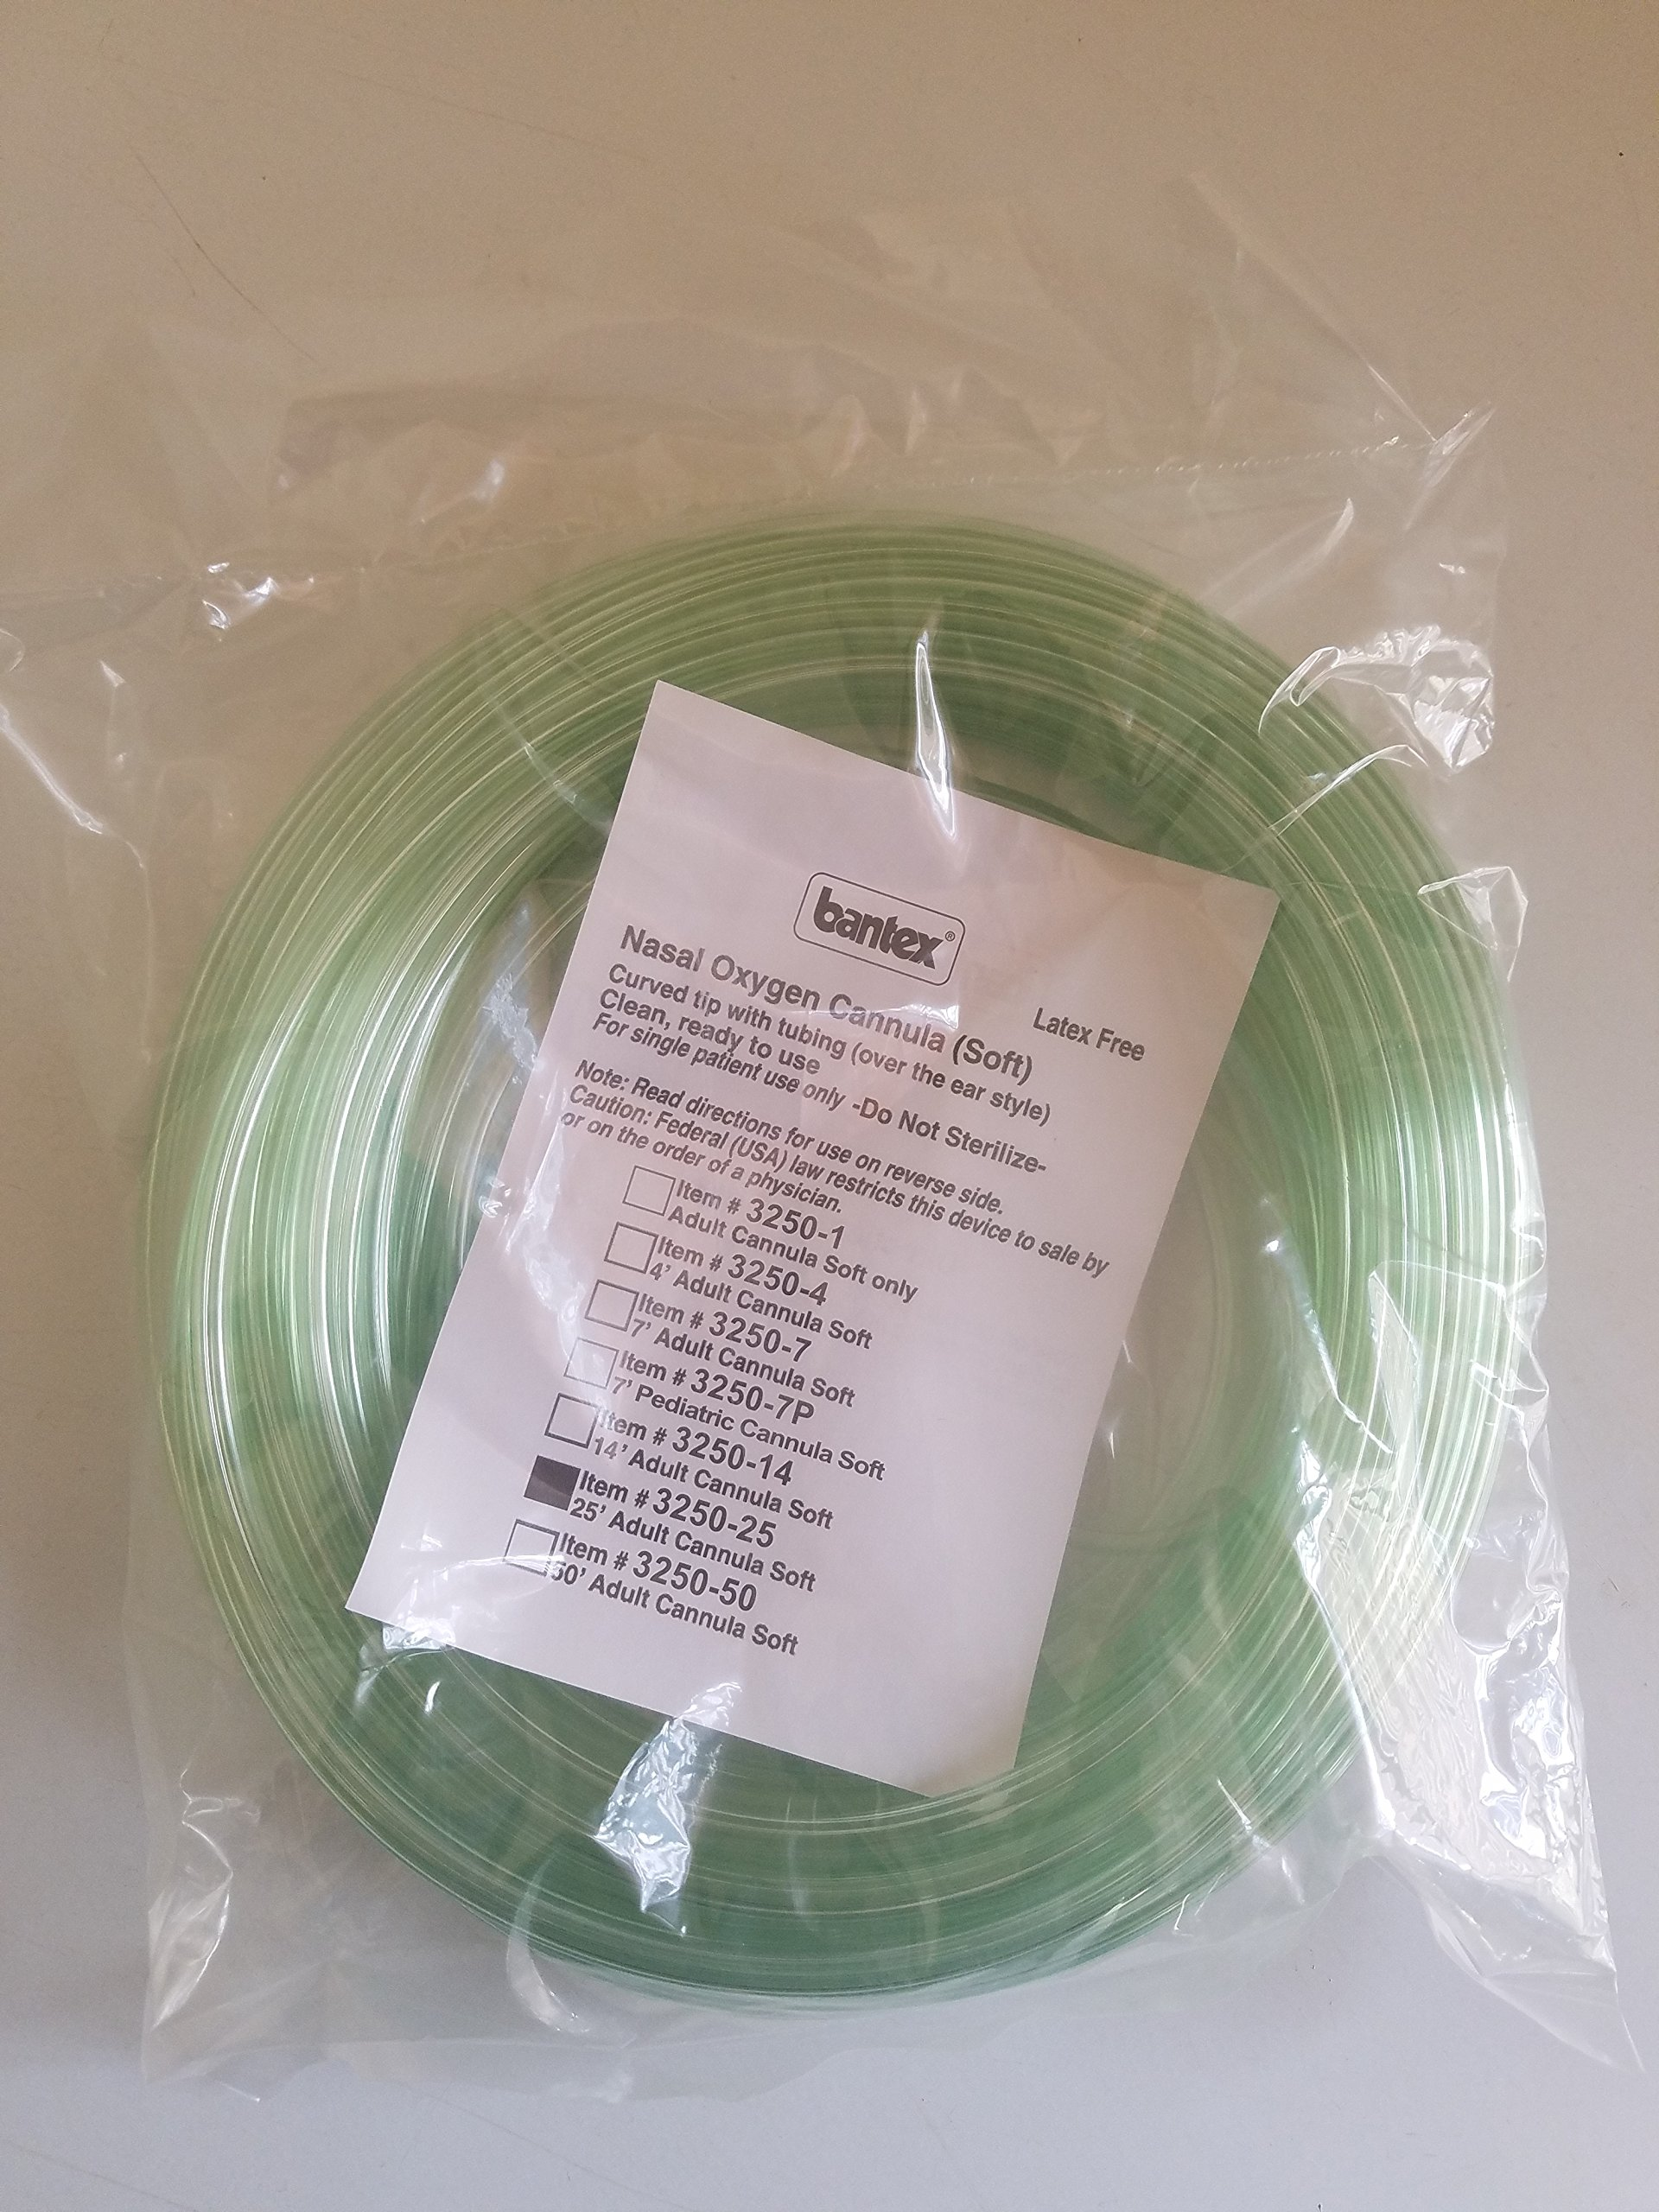 PRIME! Bantex 3250-25 25ft ADULT Soft Curved Tip Nasal Oxygen Cannula Tube Tubing